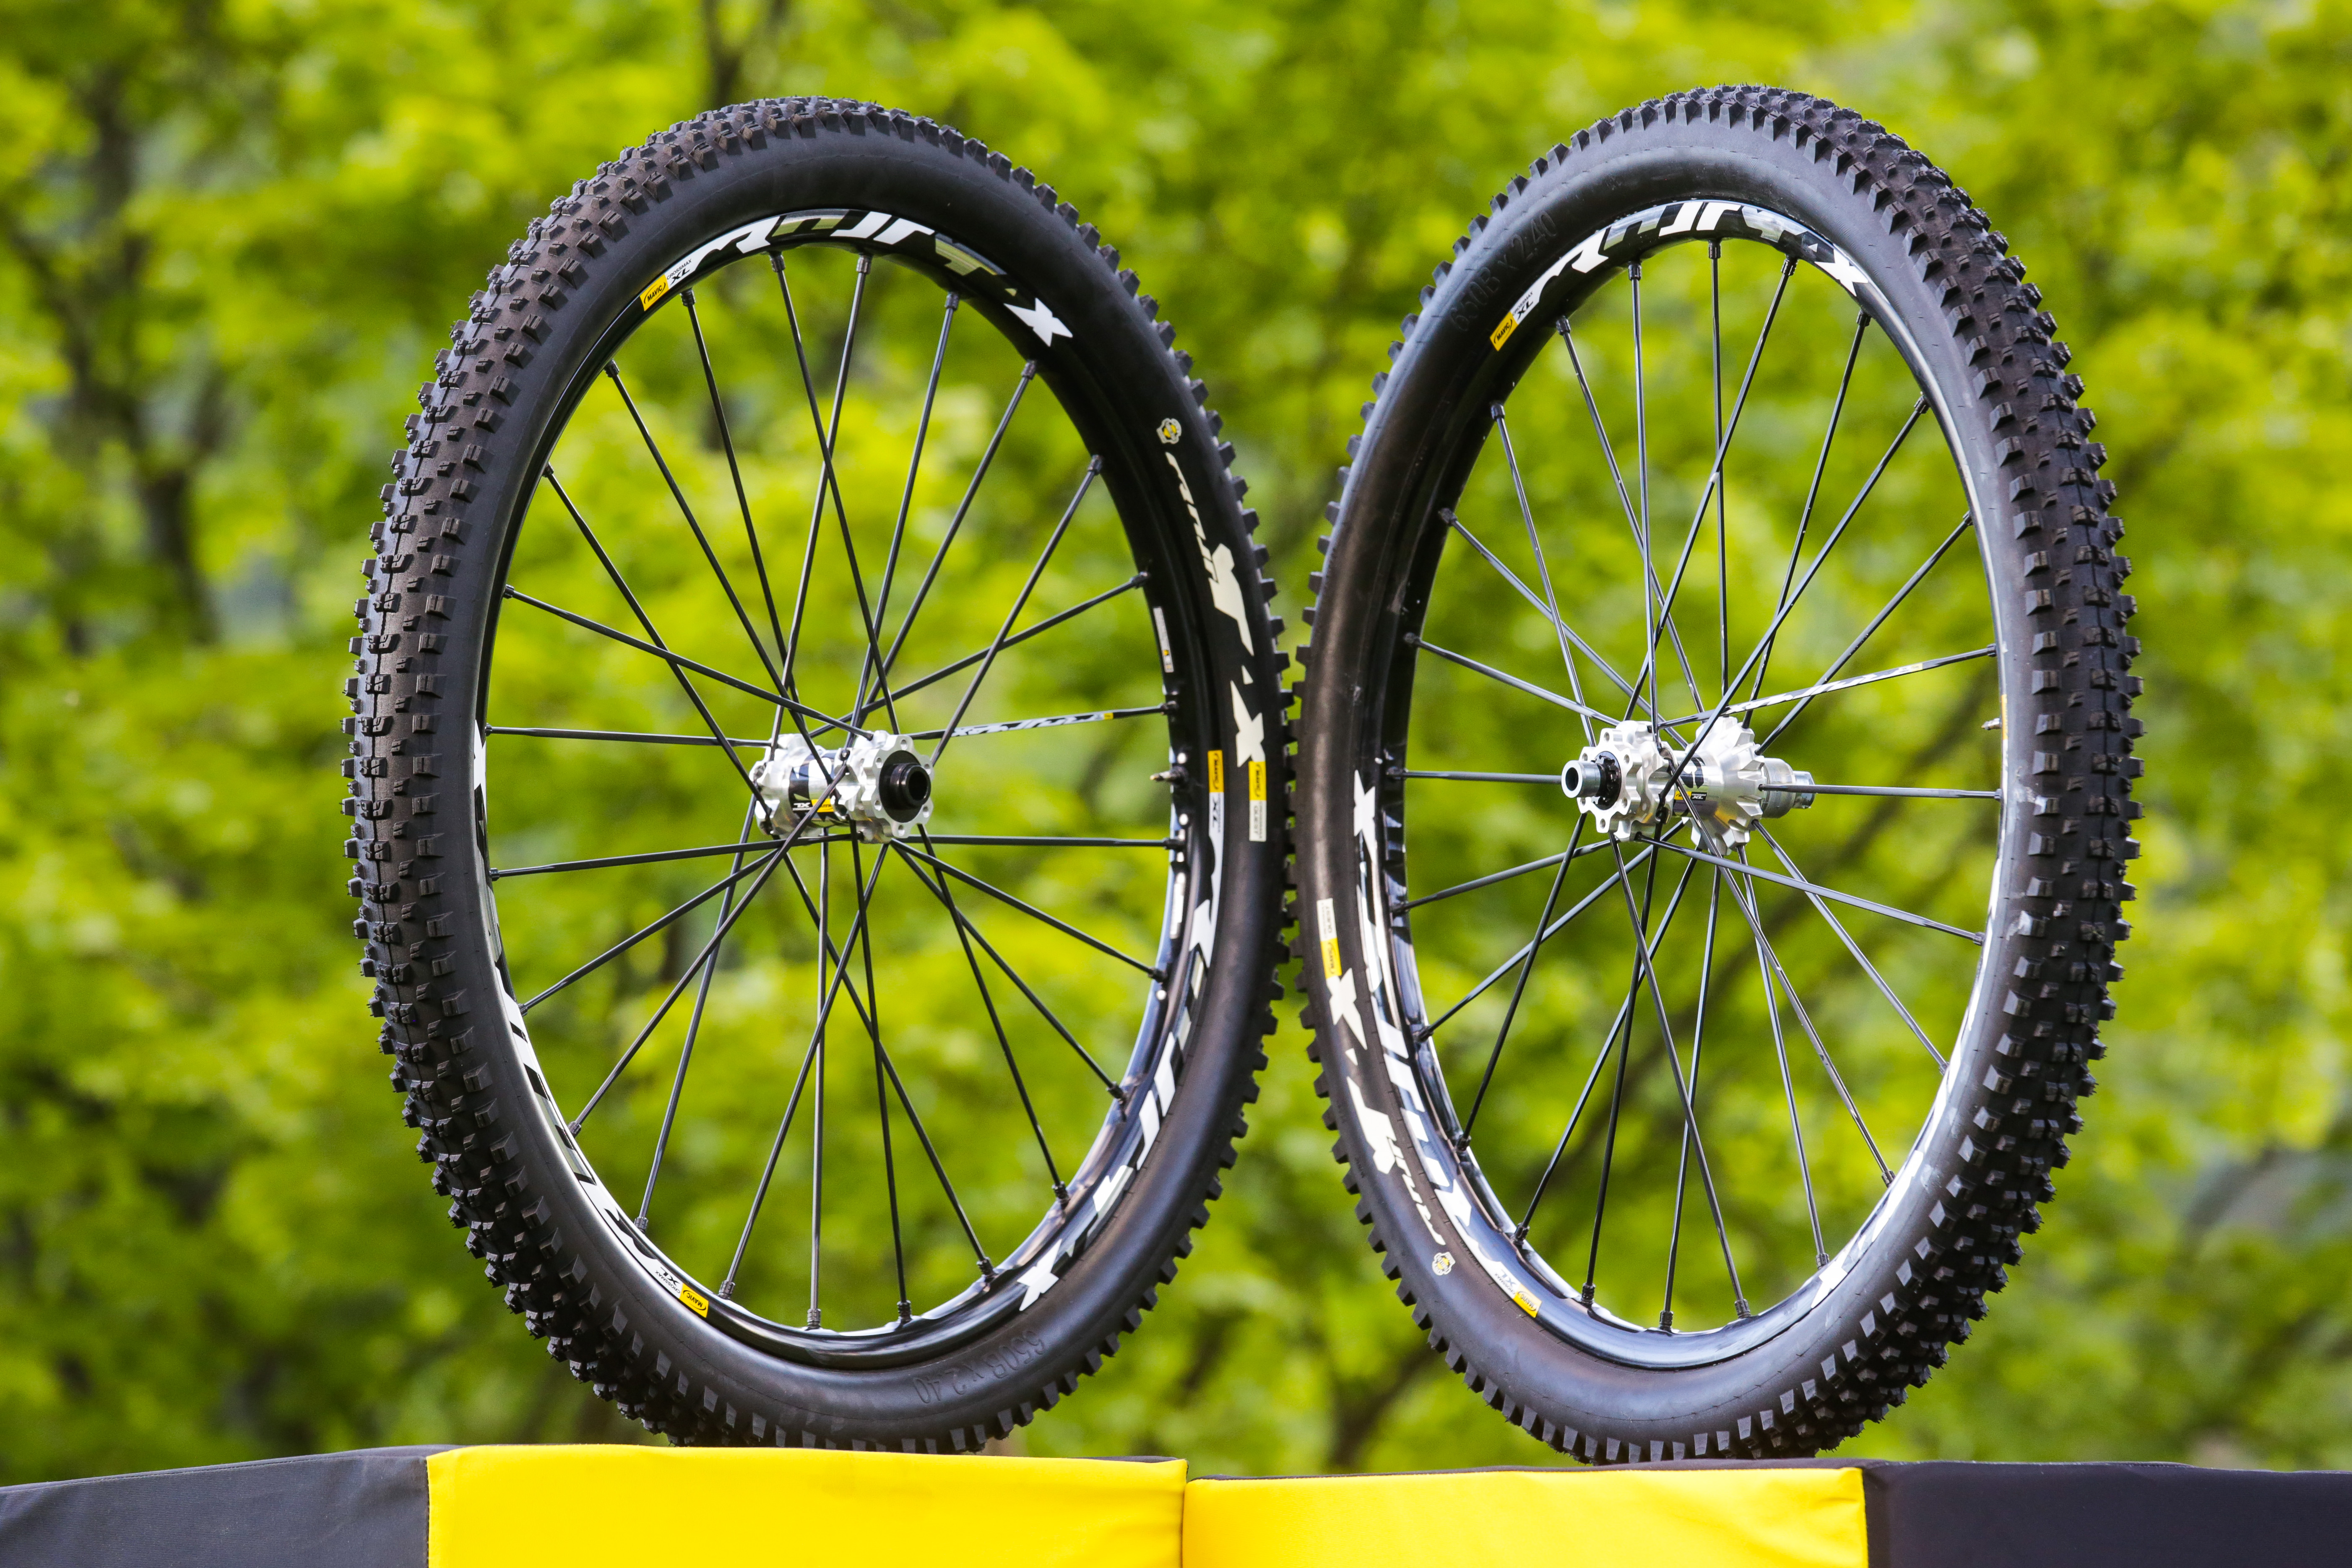 The new Crossmax XL Wheel-Tire System features a wider rim, wider tires and more spokes (24 spokes, front and rear, versus 20 spokes in front and back for the Crossmax Enduro racing wheels) than the Crossmax Enduro racing wheels in an effort to increase the durability and reliability over the long haul. These wheels and tires are intended to last over rugged terrain for long periods of time—and they held up well over the course of our extended journey.